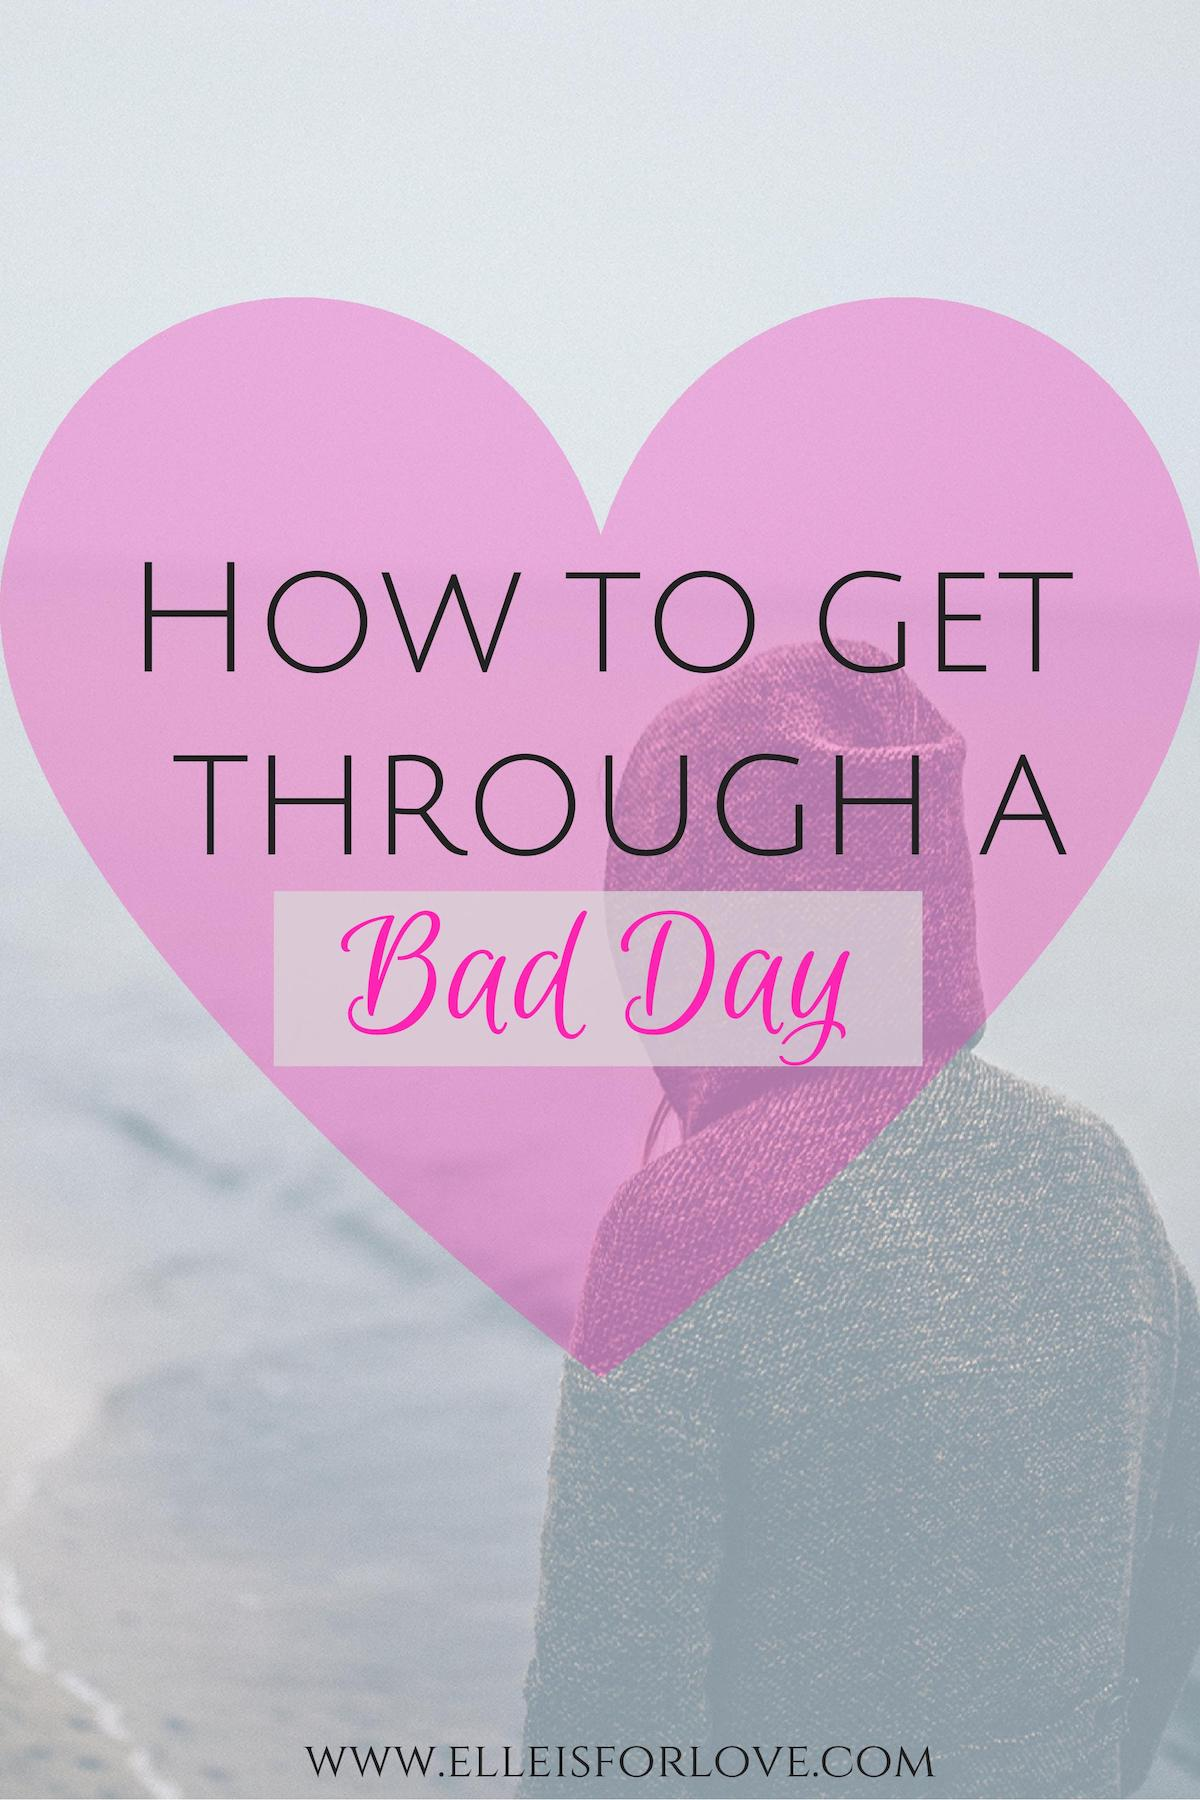 How to Get Through a Bad Day